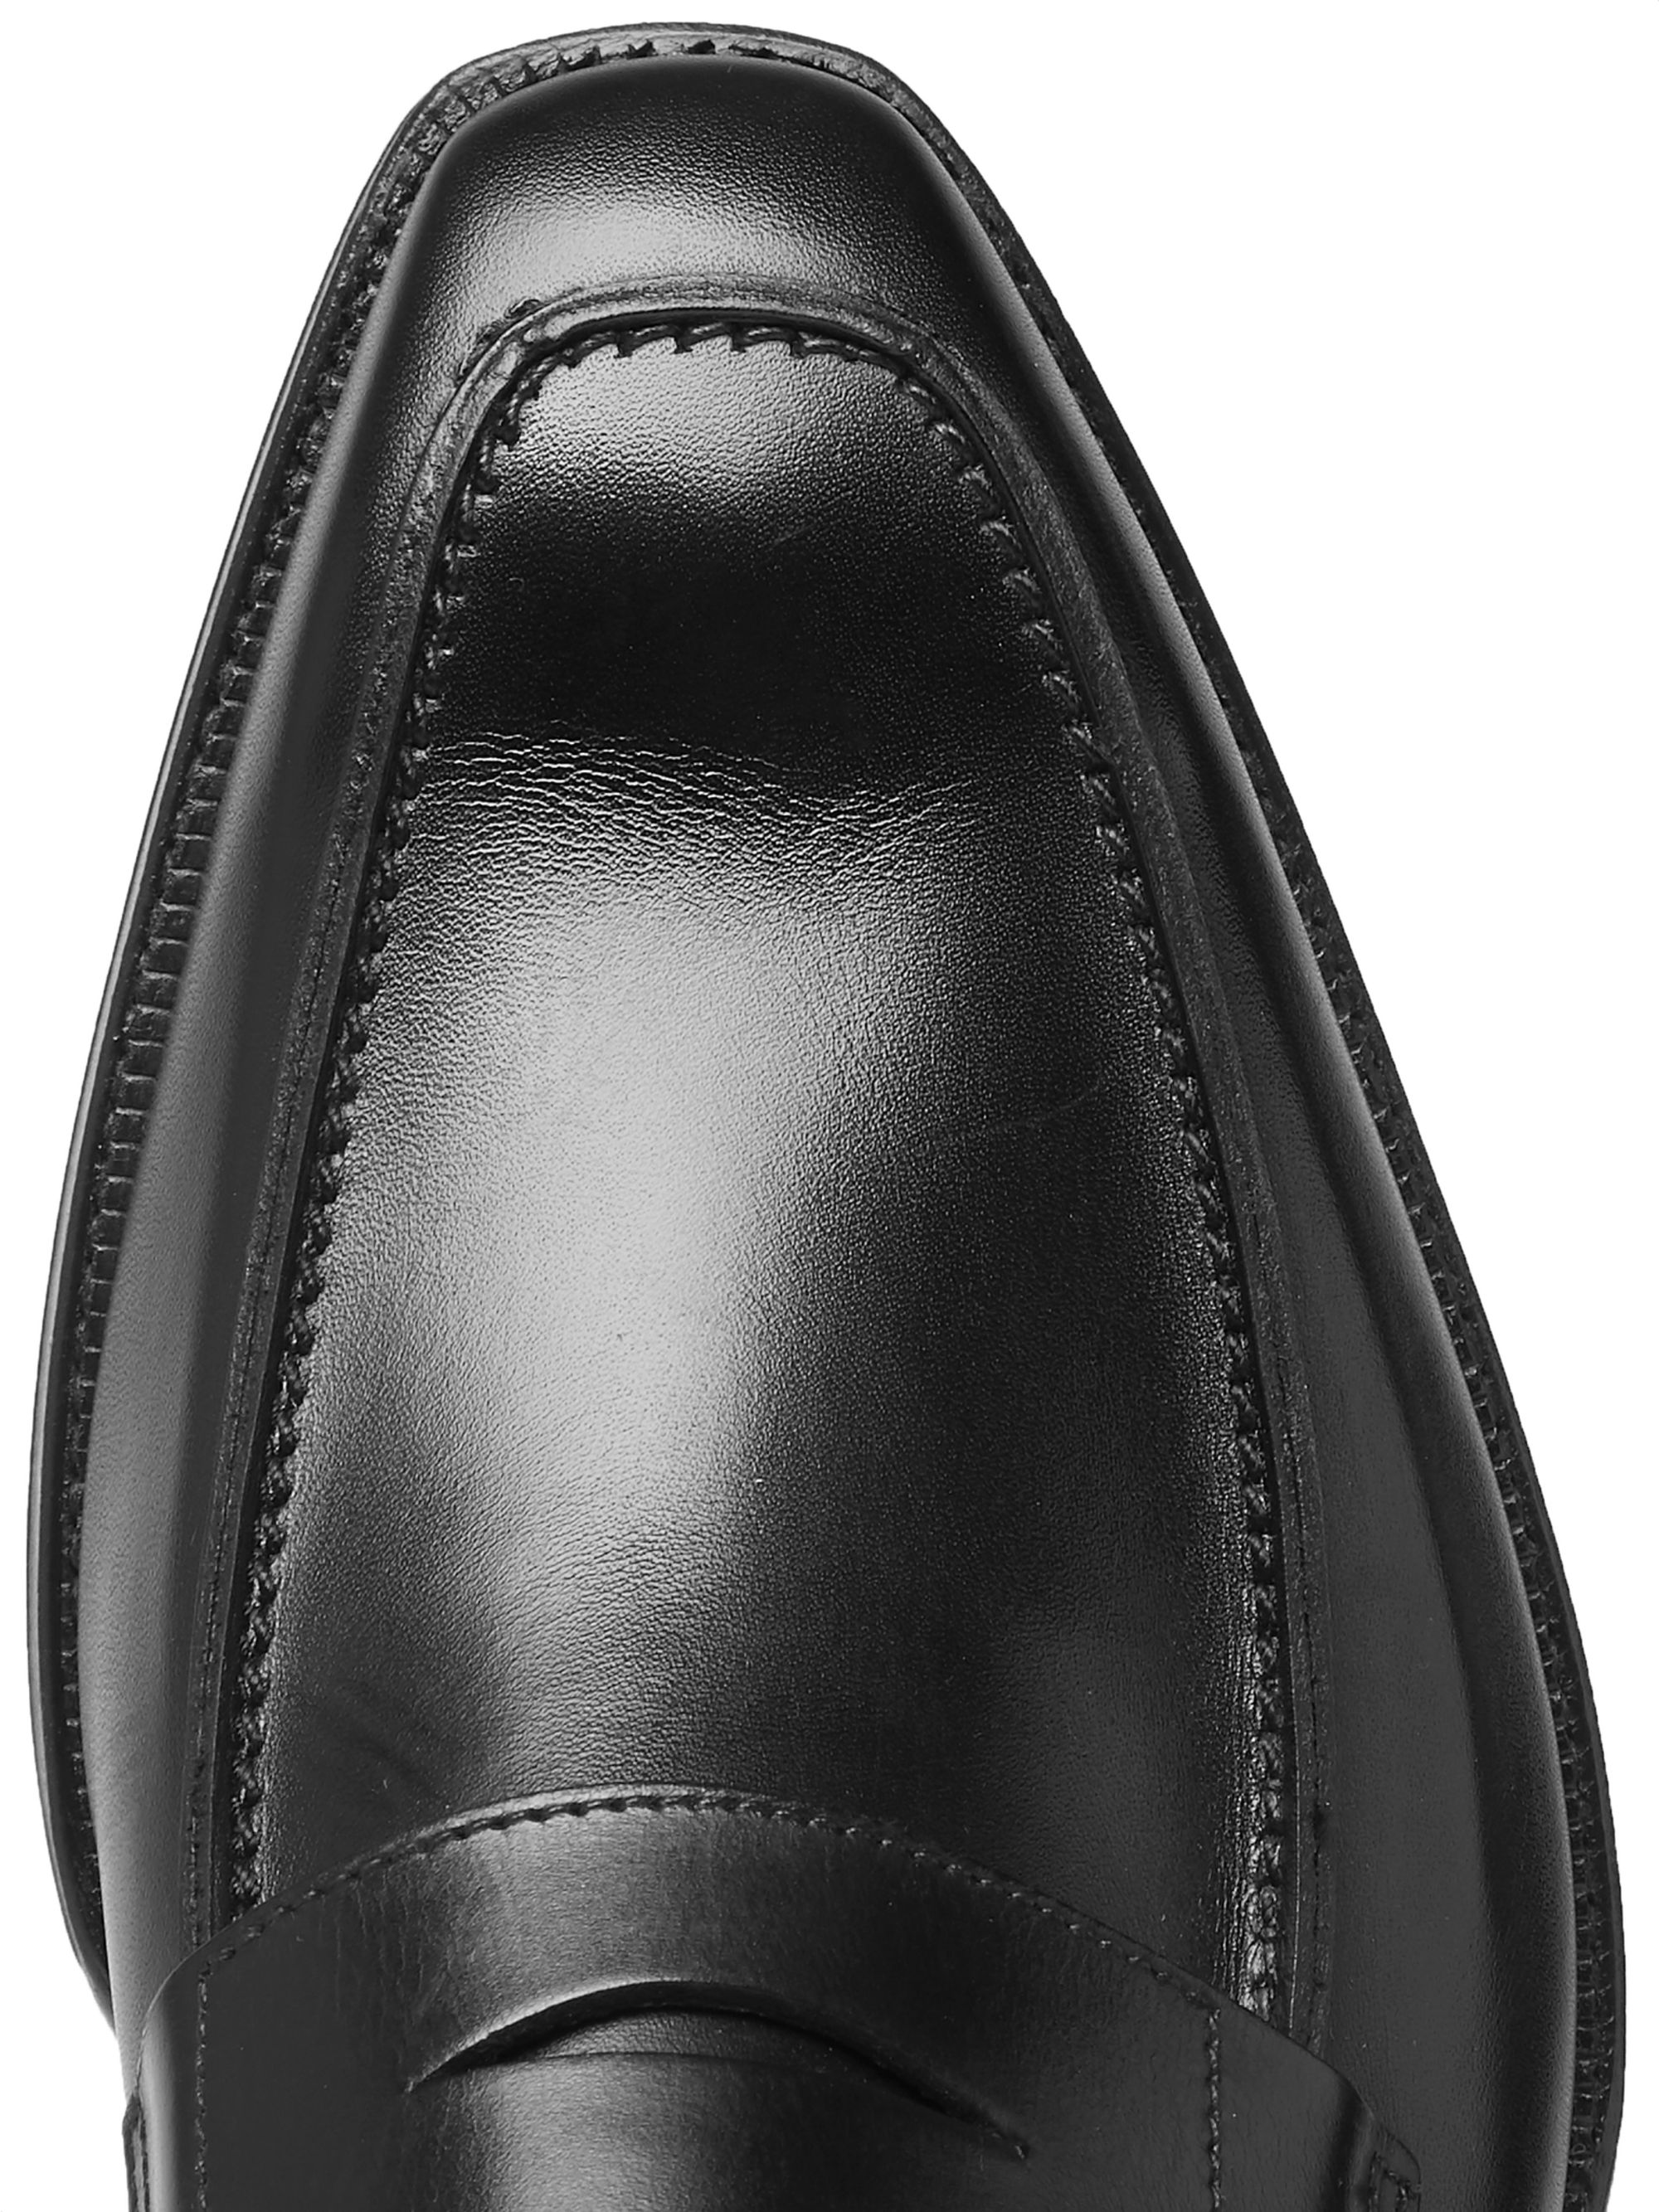 Black George Leather Penny Loafers   Cleverley